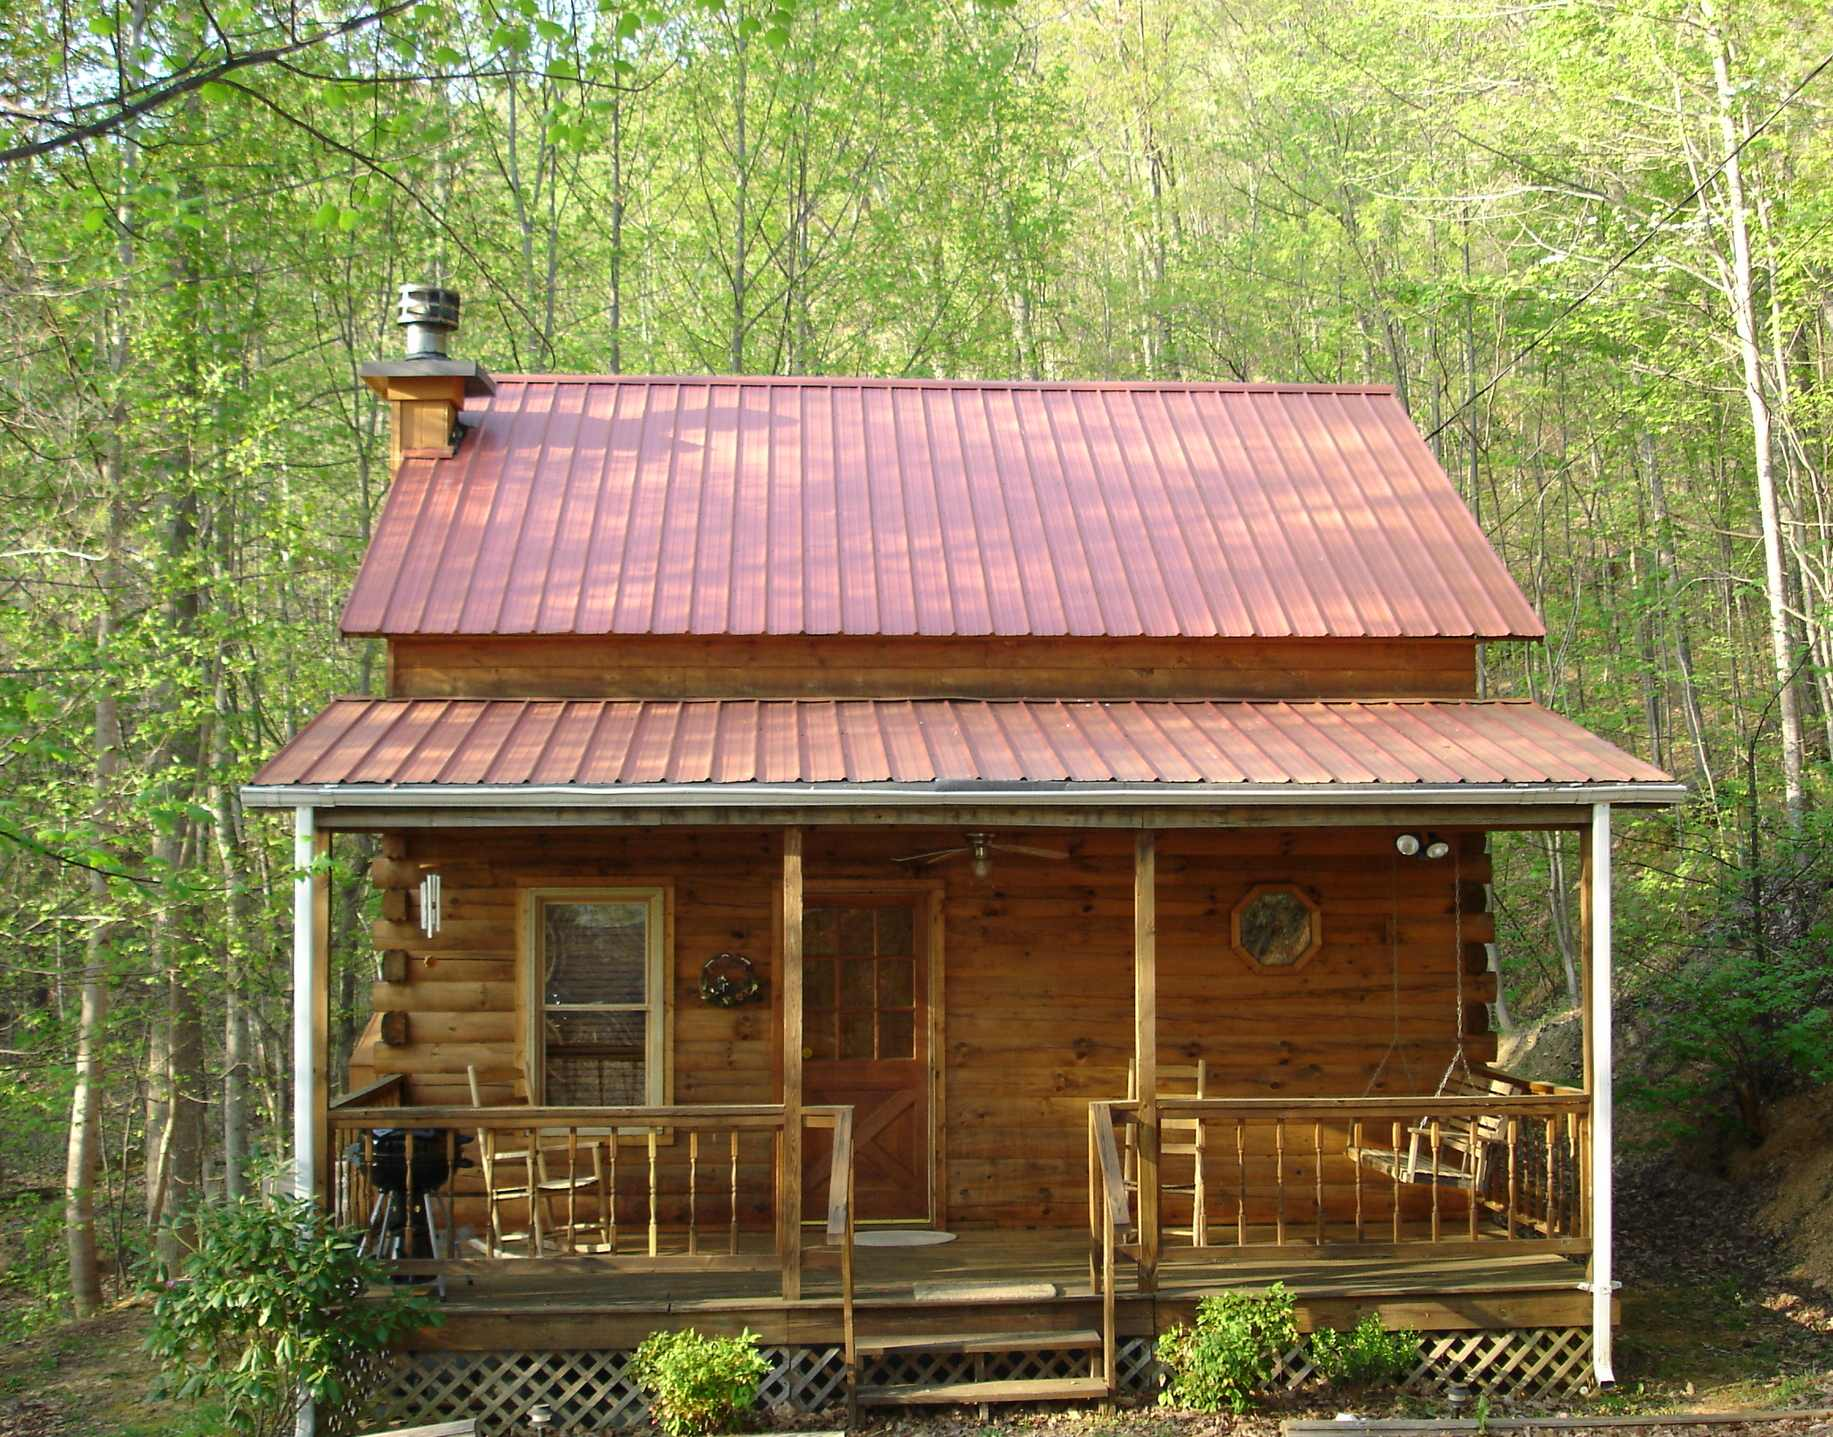 Cabin home log home lake house on pinterest log for Cabins small